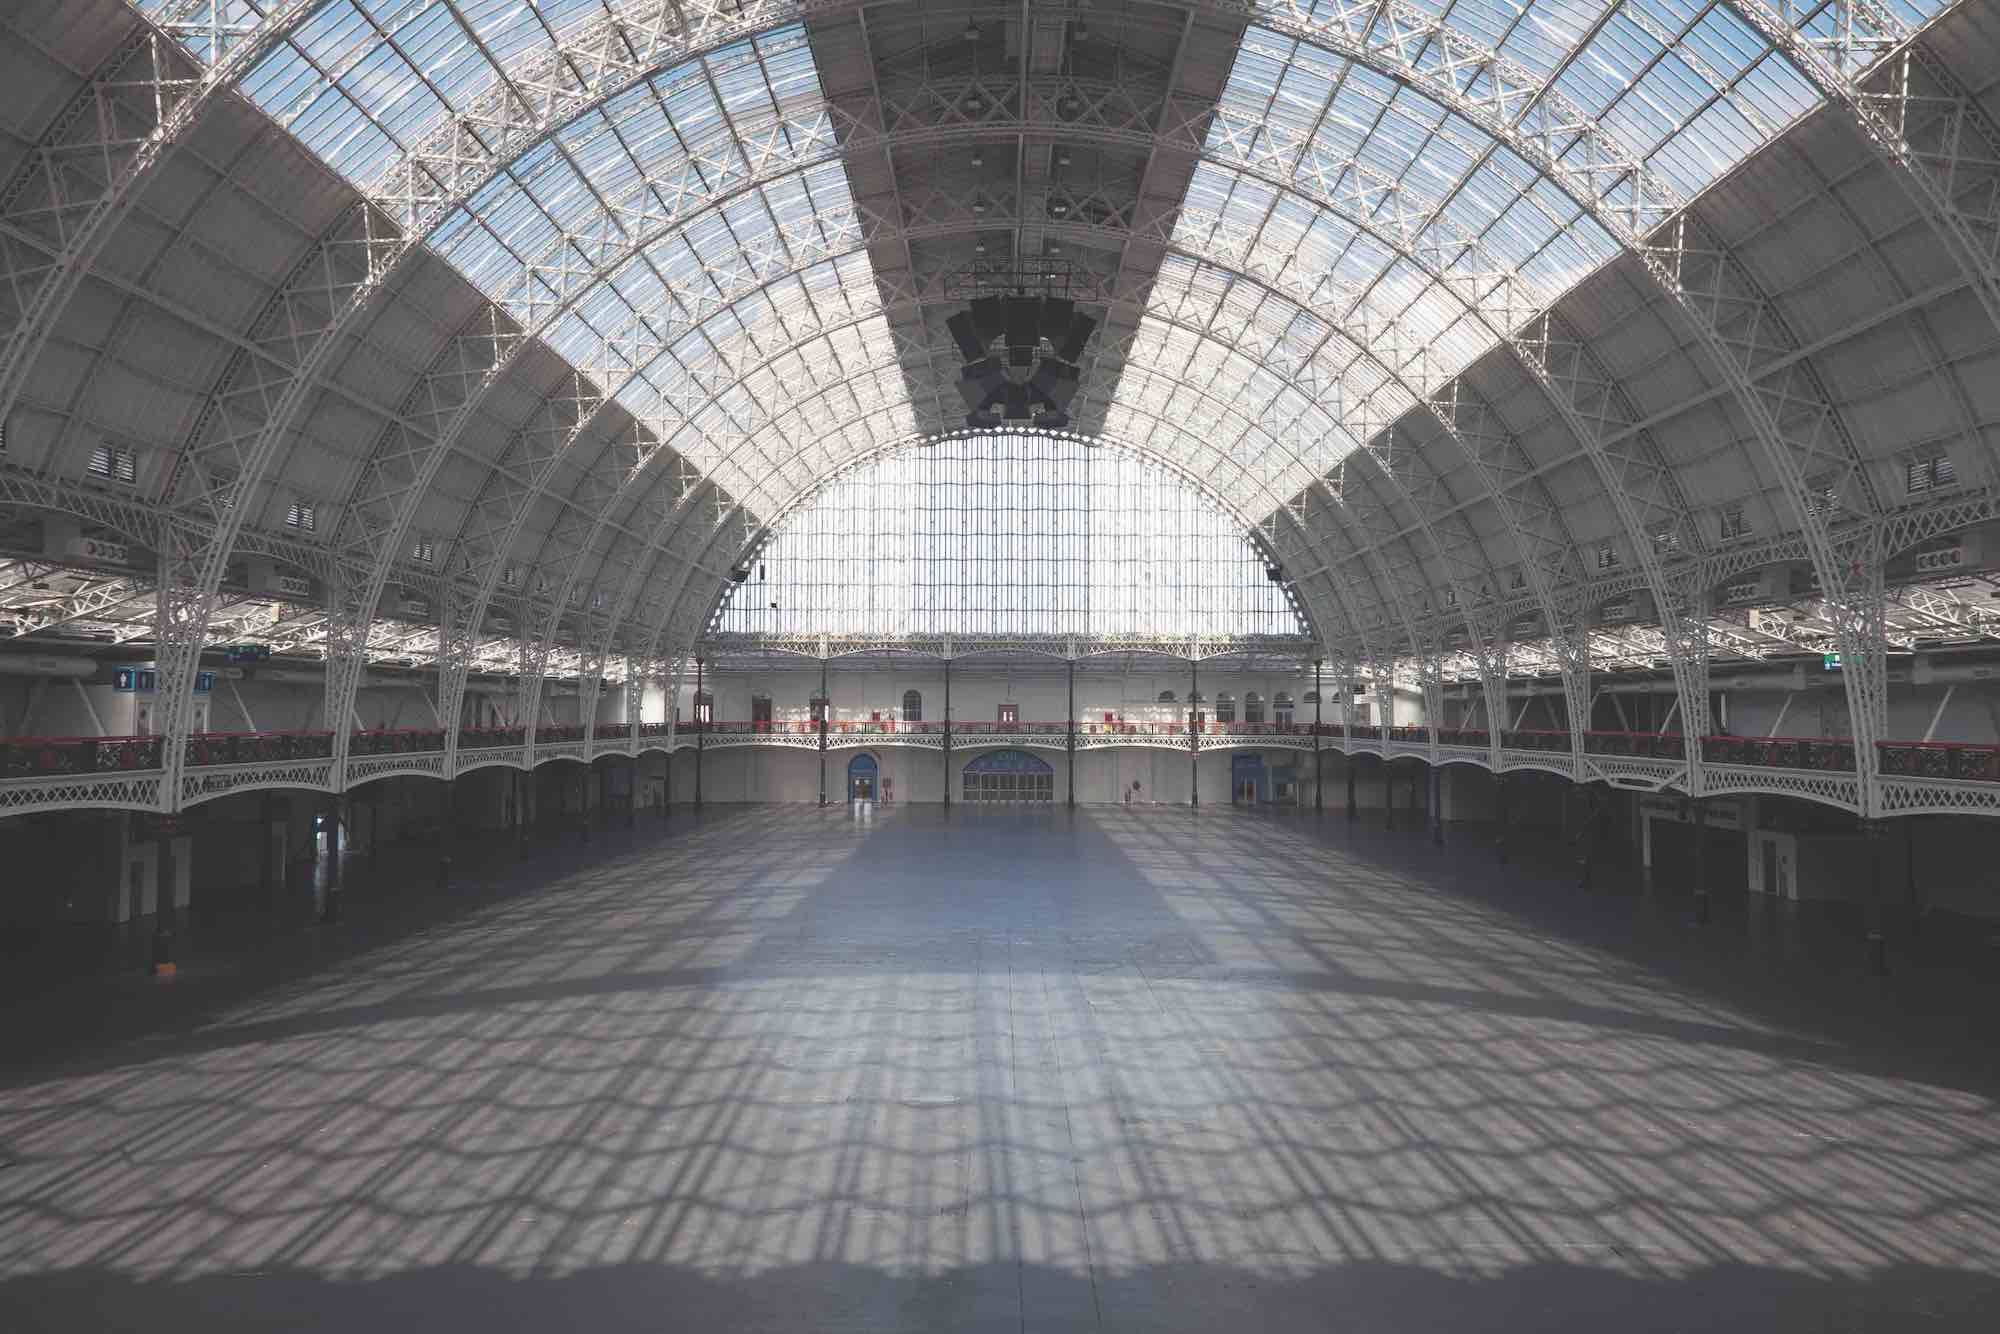 VegfestUK London moves into Olympia Grand on November 14th 15th 2020